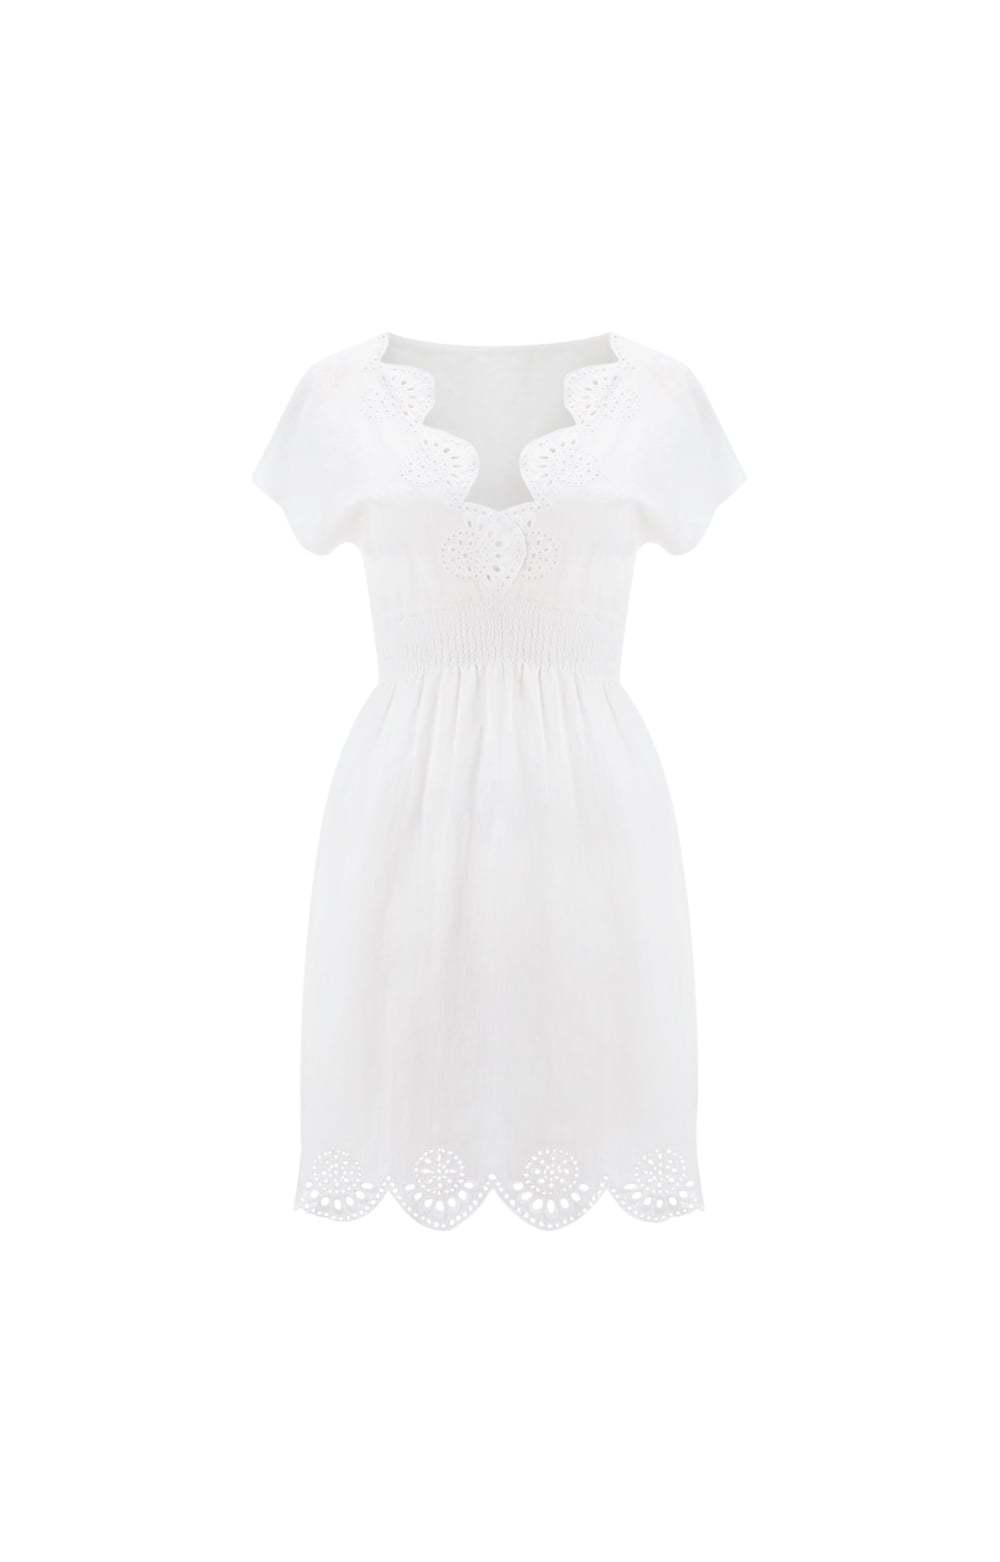 White Mykonos Cutwork Ruched V Neck Dress Size: - neckline: v-neck; pattern: plain; predominant colour: white; occasions: casual, holiday; length: just above the knee; fit: fitted at waist & bust; style: fit & flare; fibres: cotton - 100%; hip detail: subtle/flattering hip detail; sleeve length: short sleeve; sleeve style: standard; texture group: cotton feel fabrics; pattern type: fabric; season: s/s 2016; wardrobe: basic